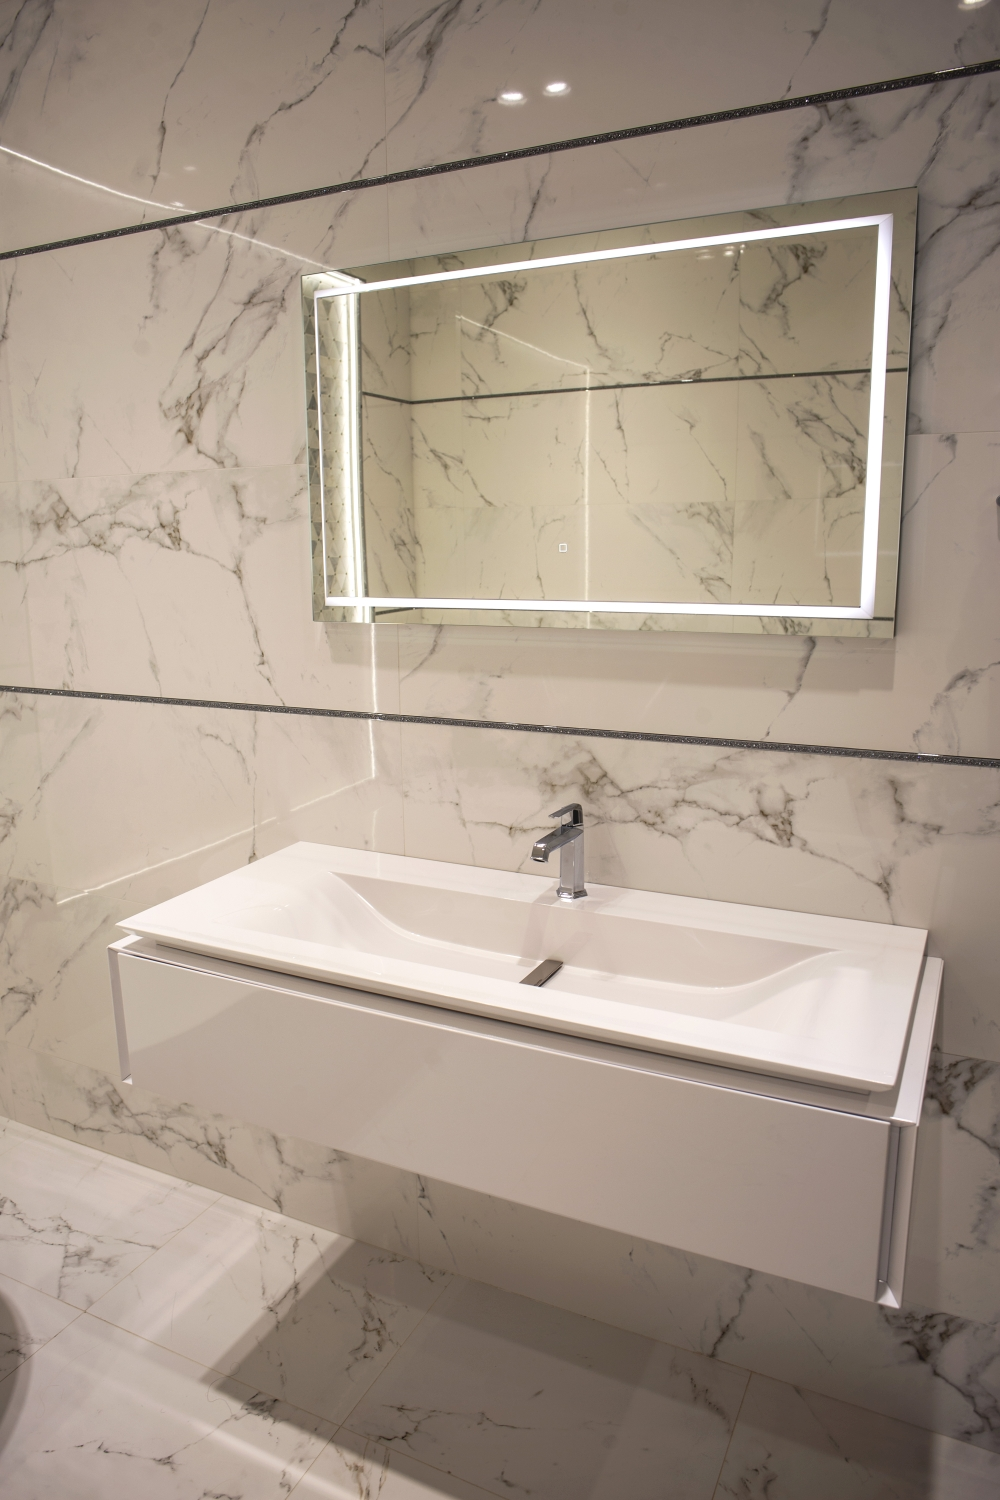 Bahtroom with marble-like ceramics – Porcelanosa